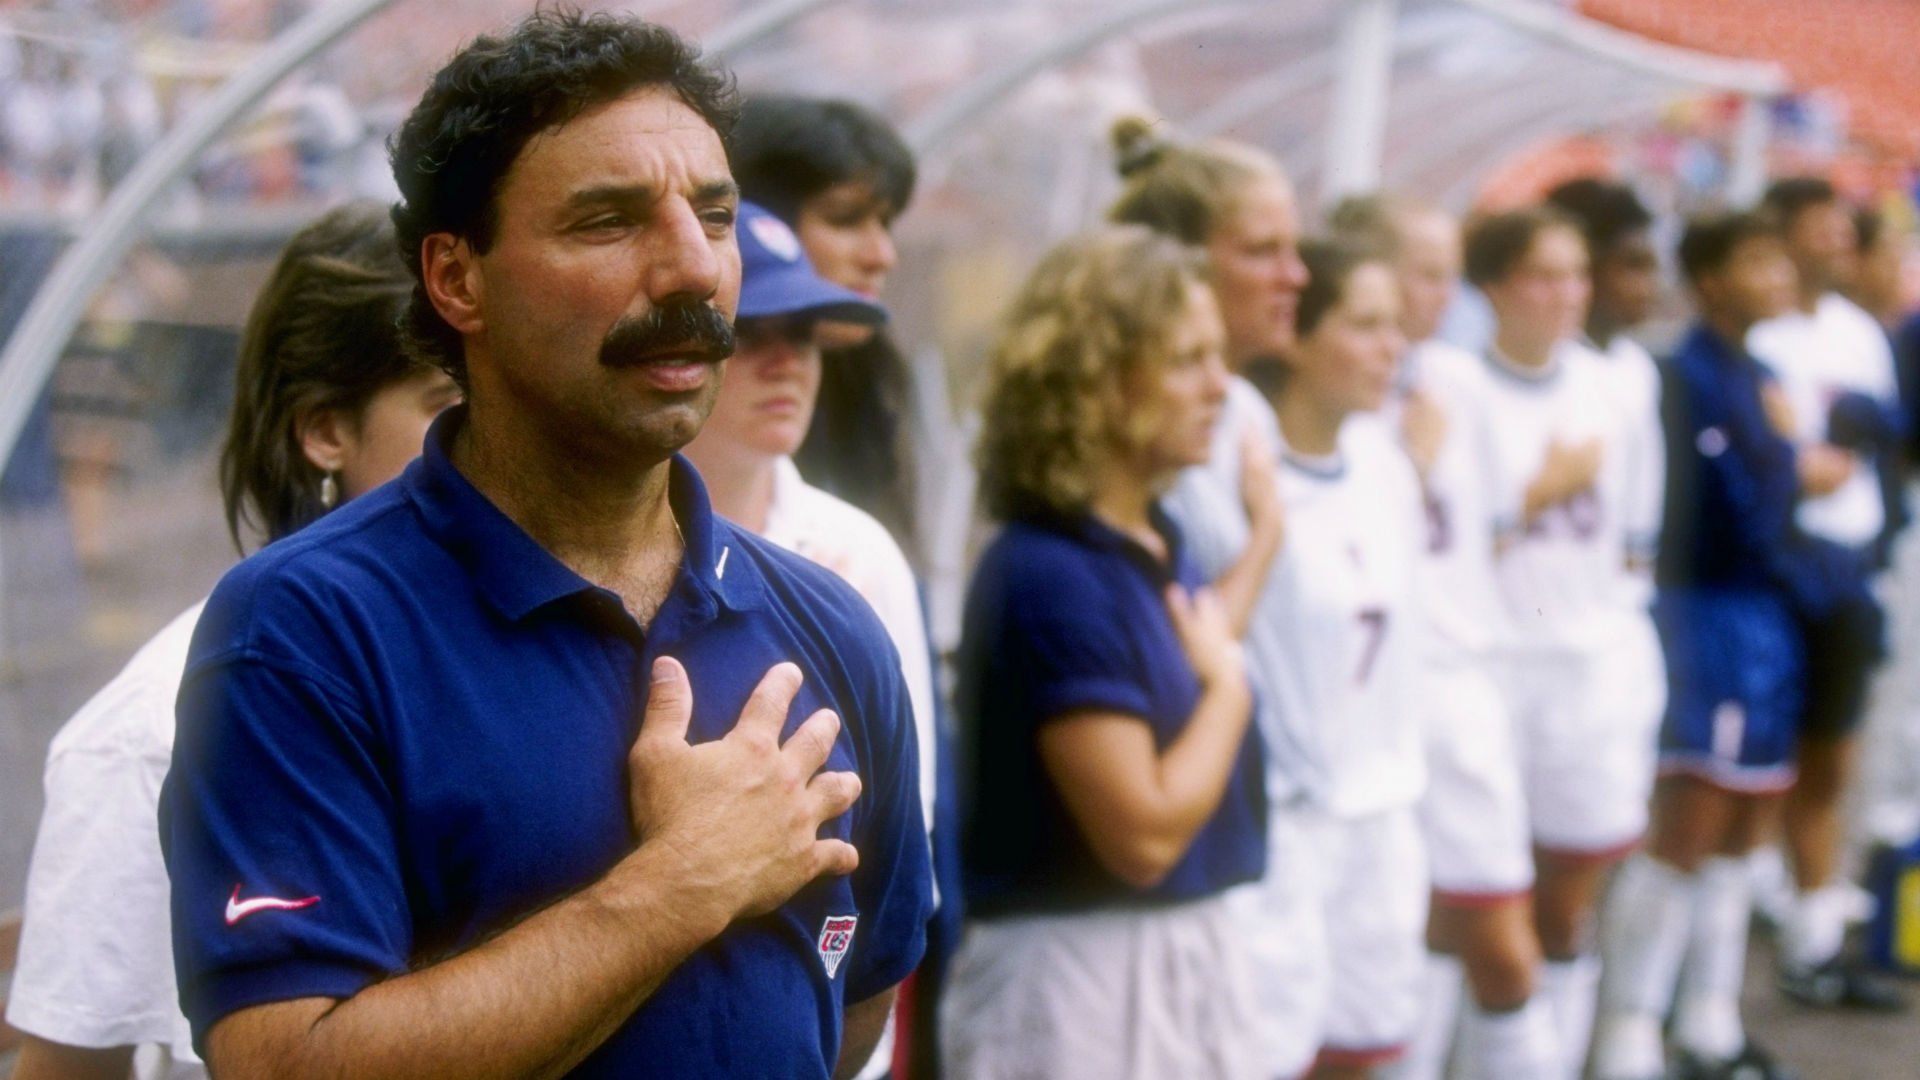 Tony DiCicco, iconic U.S. women's soccer coach, passes away at 68